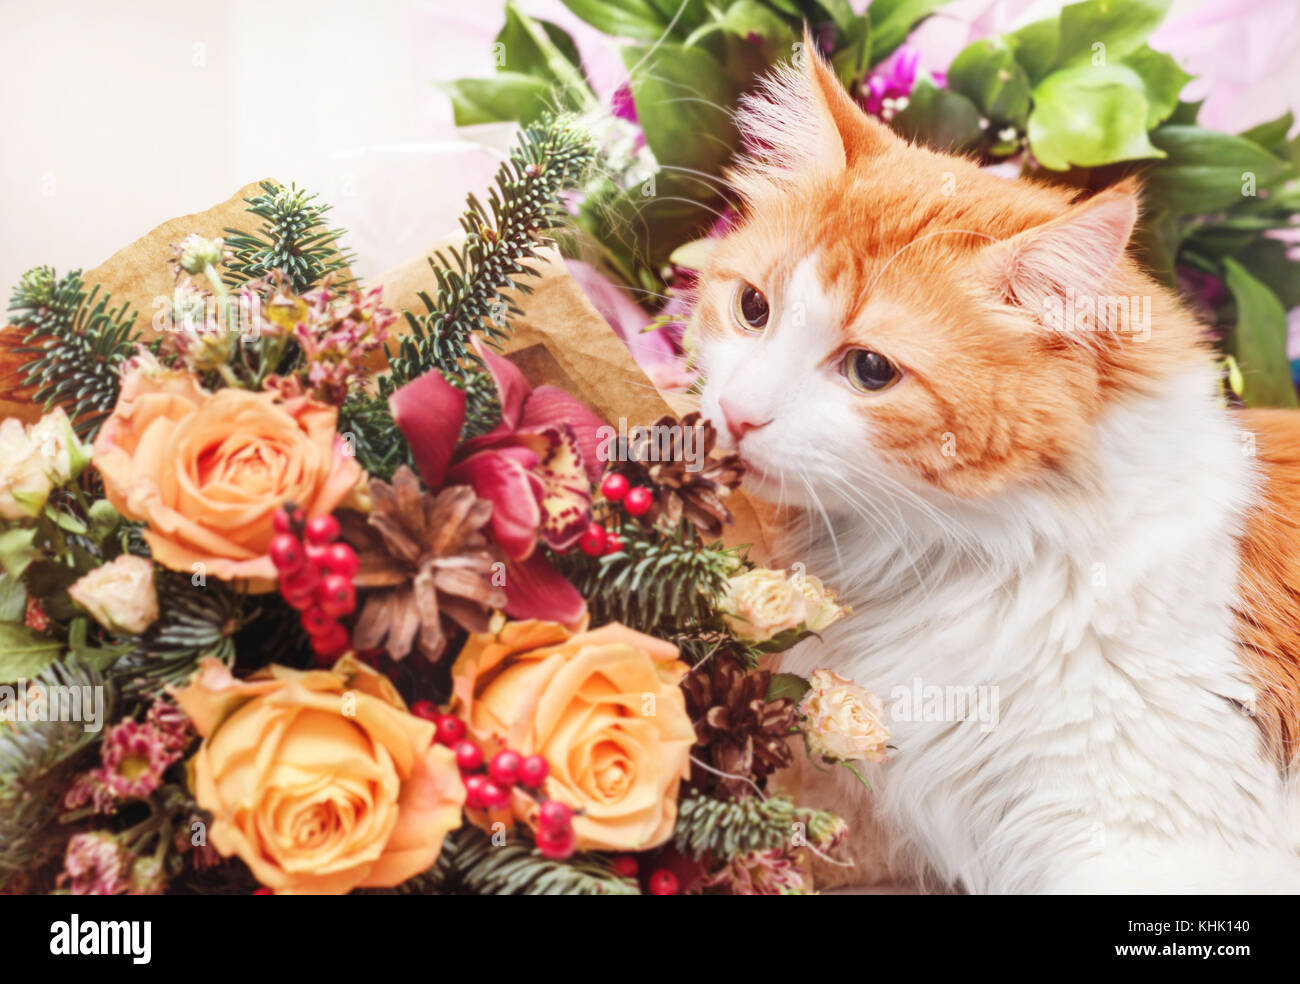 Birthday Cat Stock Photos & Birthday Cat Stock Images - Alamy